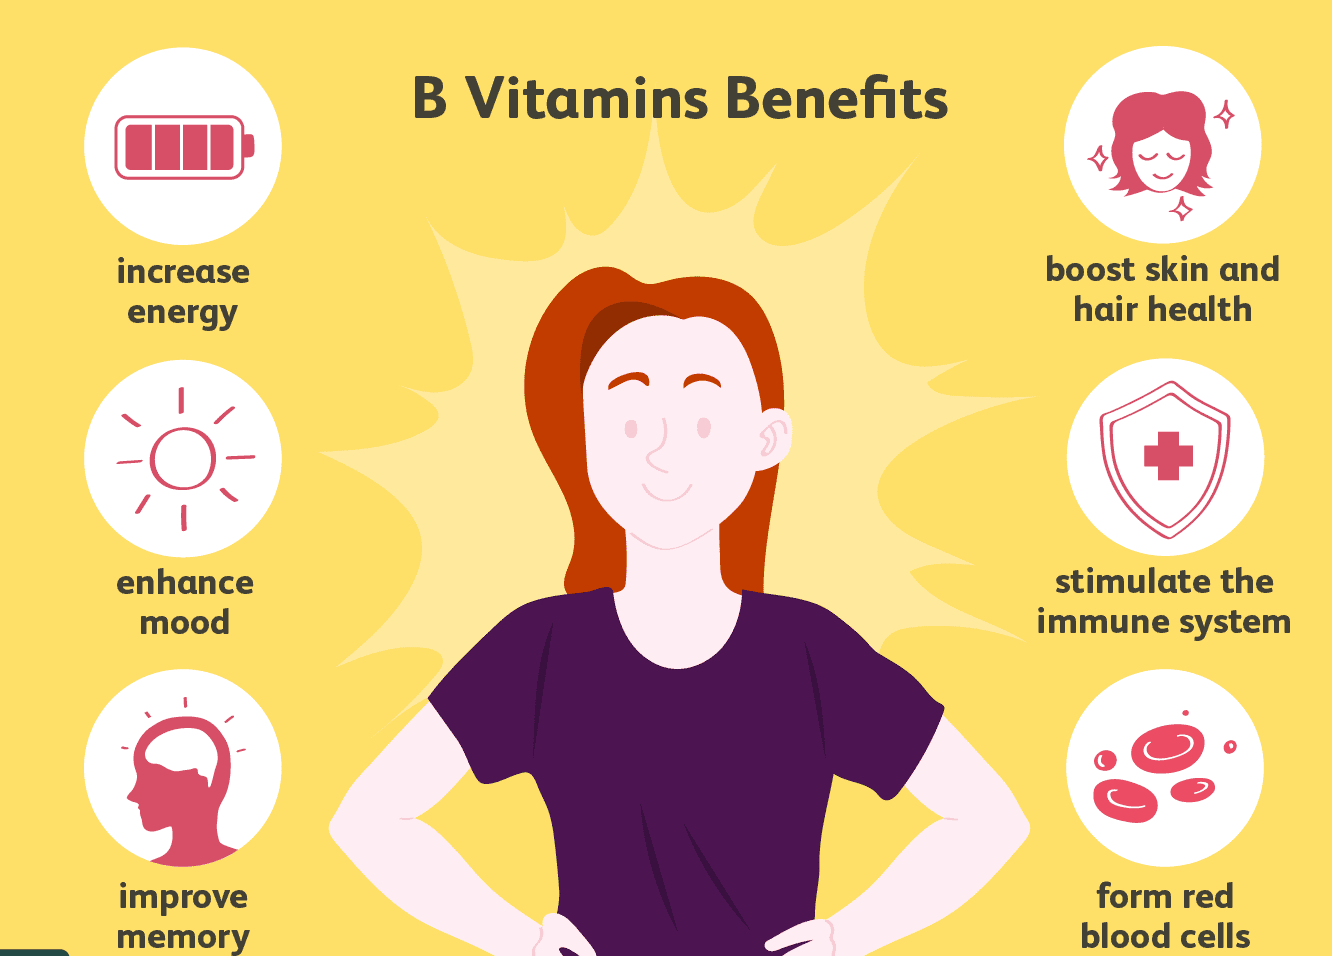 7 Health Benefits of Vitamin B6